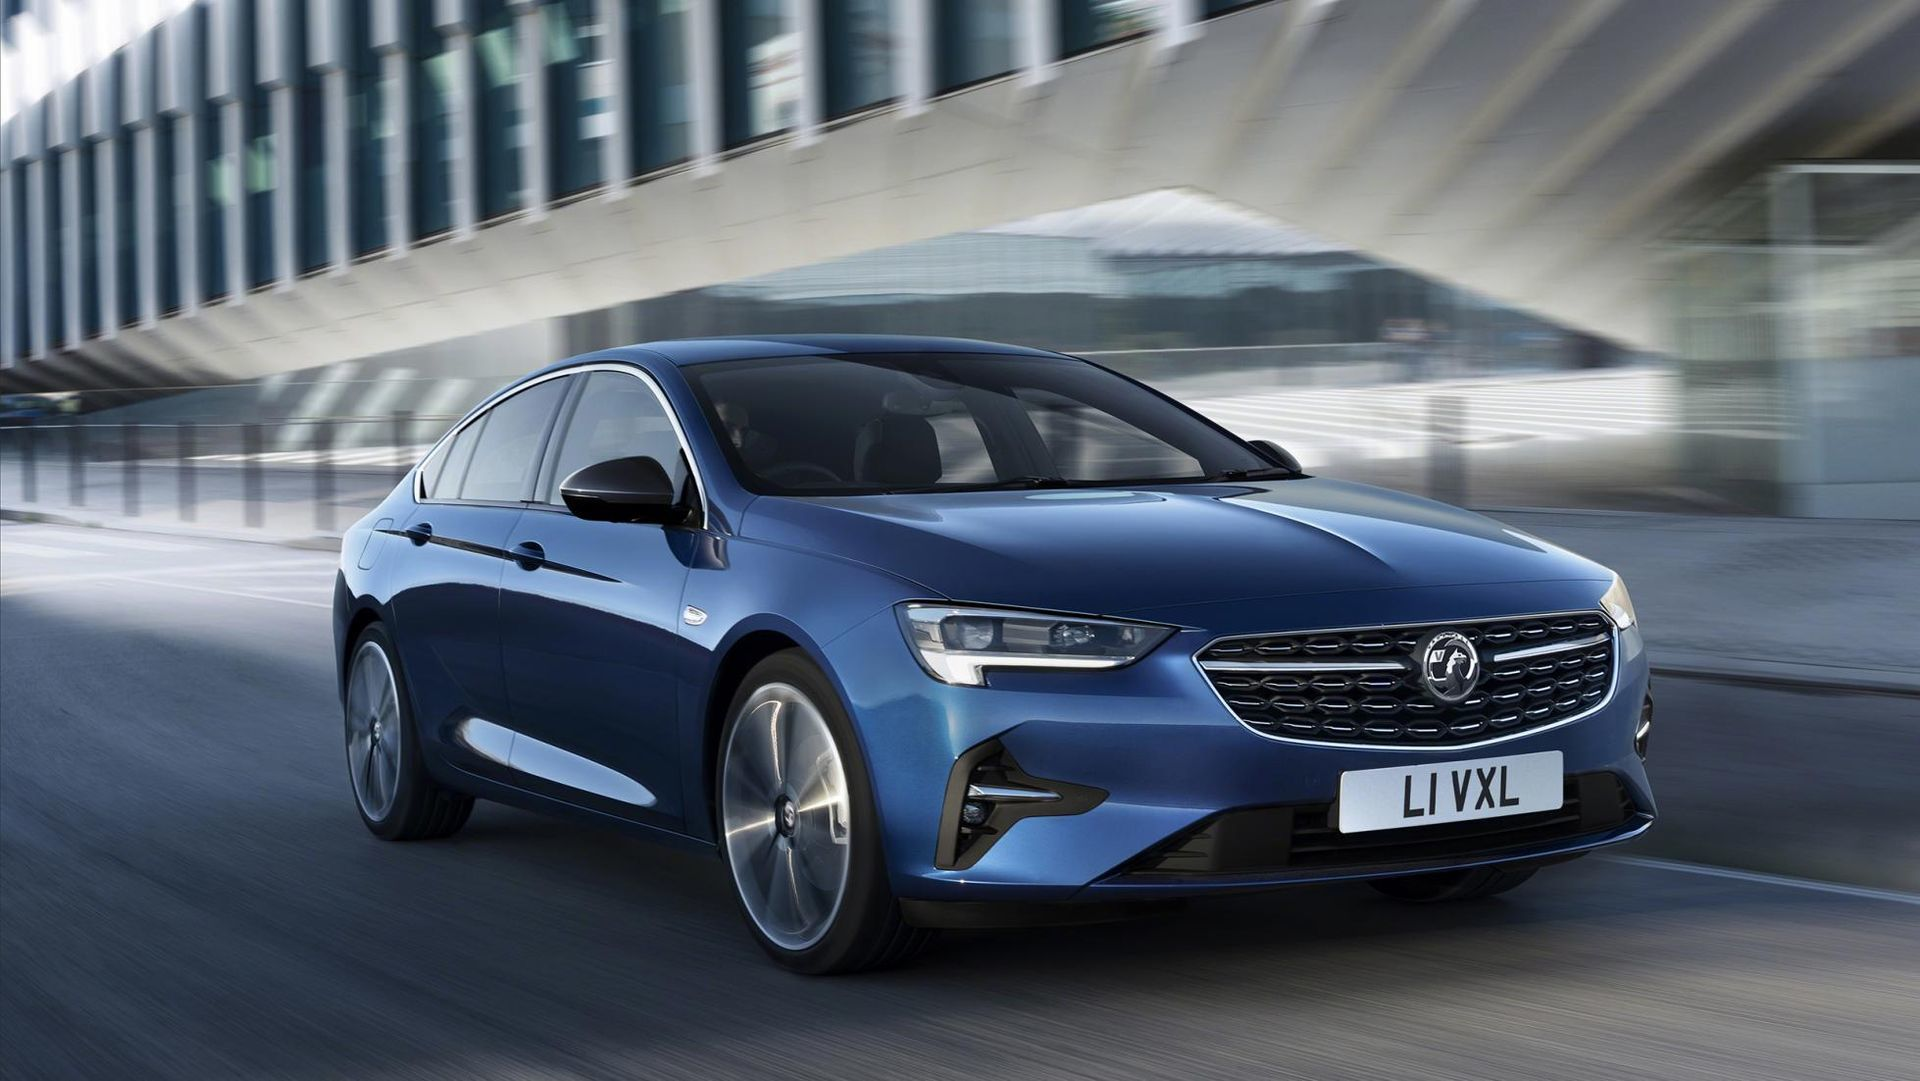 2020 New Opel Insignia Concept and Review